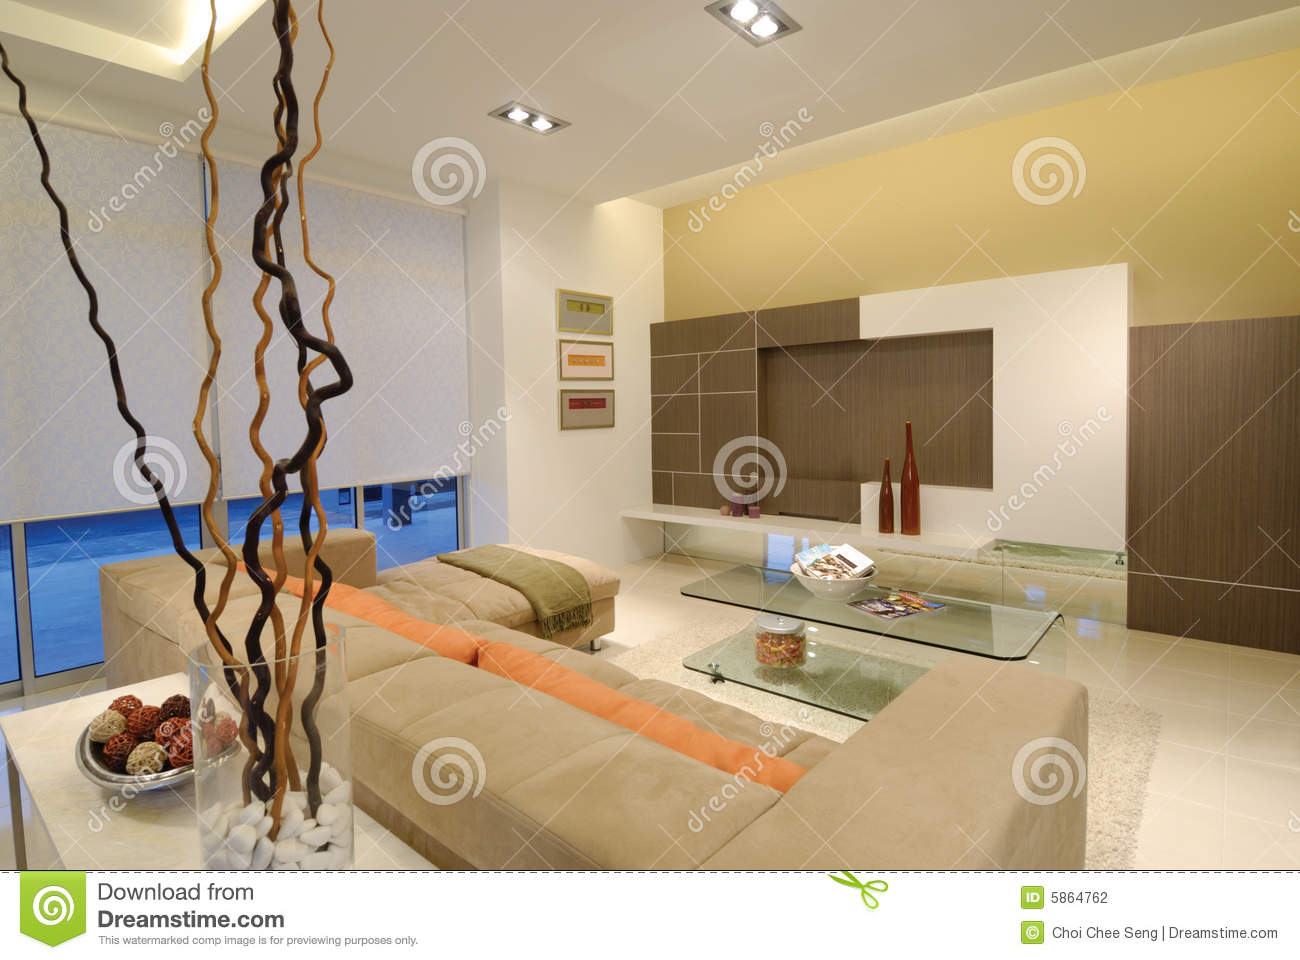 Simple Room Design Free